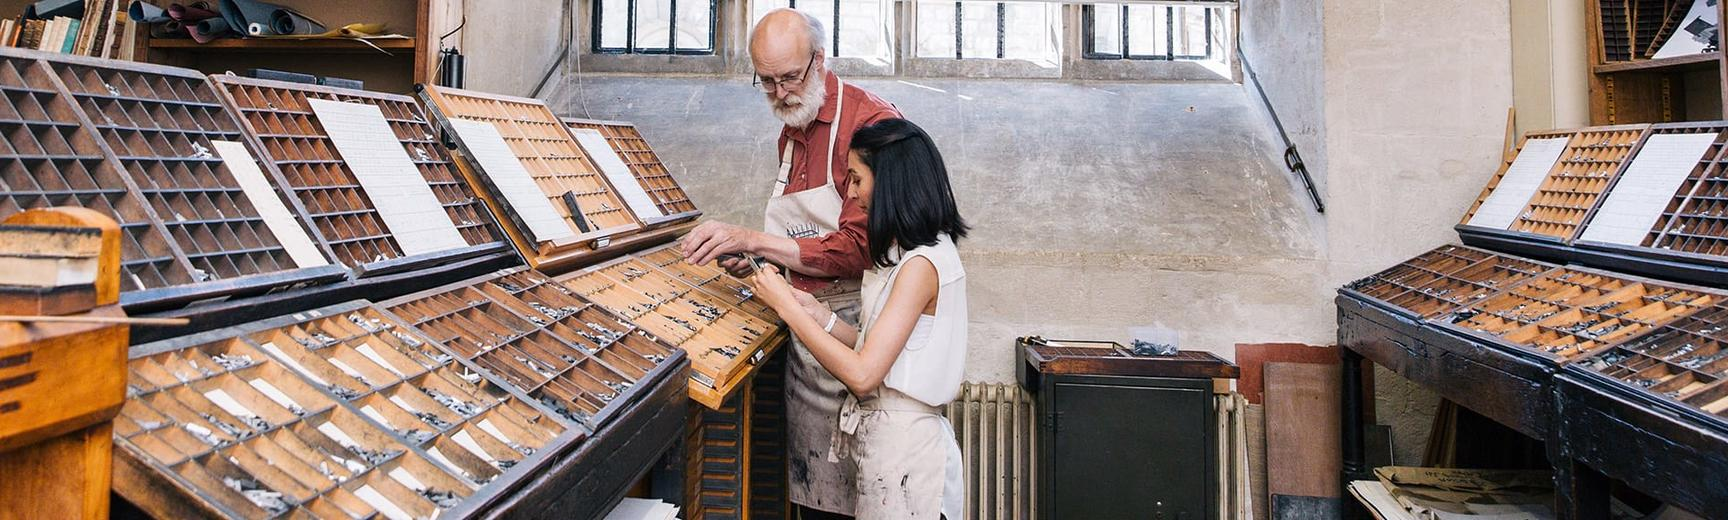 Historic letterpress printing workshop at the Bodleian Libraries, Oxford